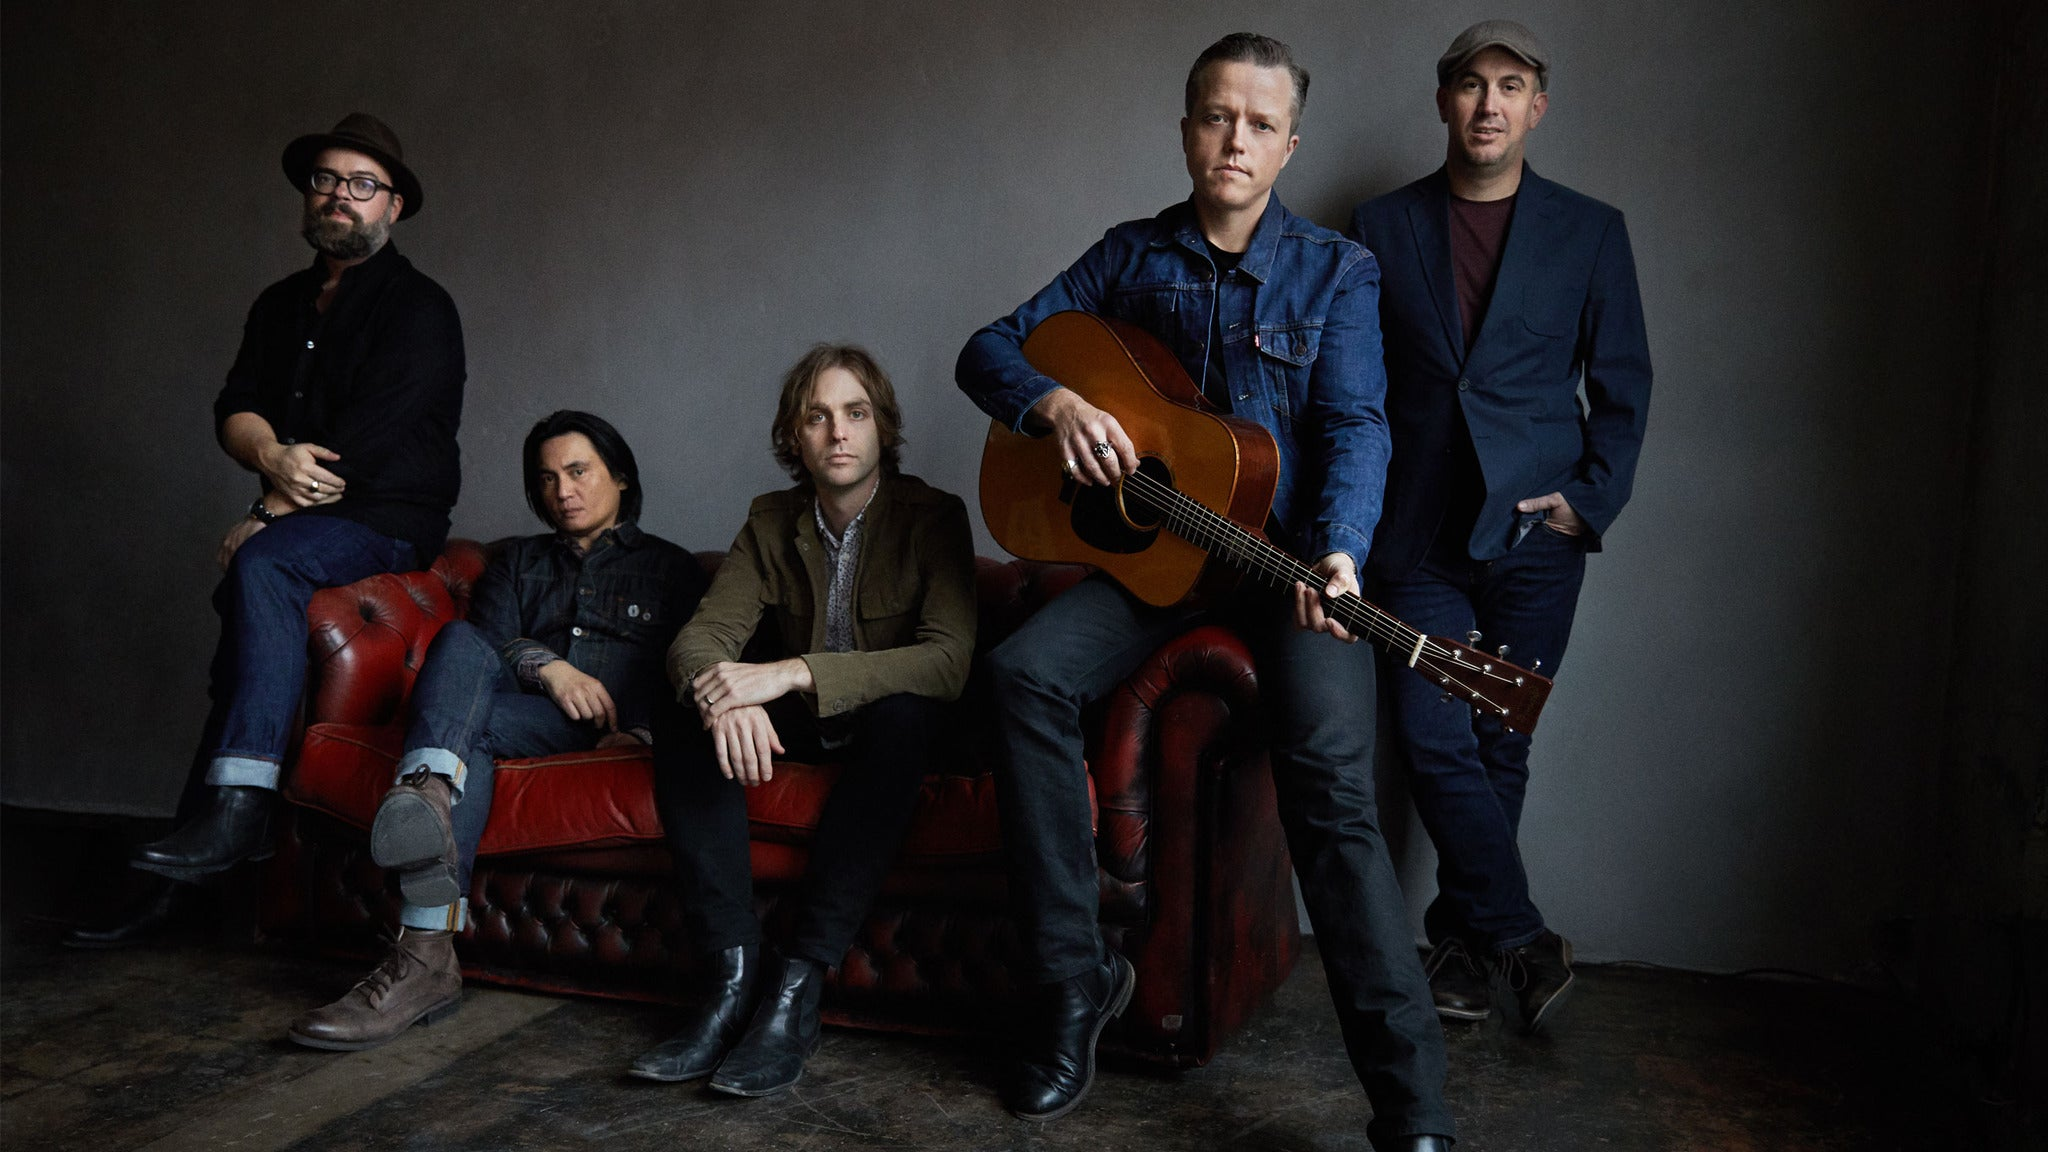 Jason Isbell & the 400 Unit at The Chicago Theatre